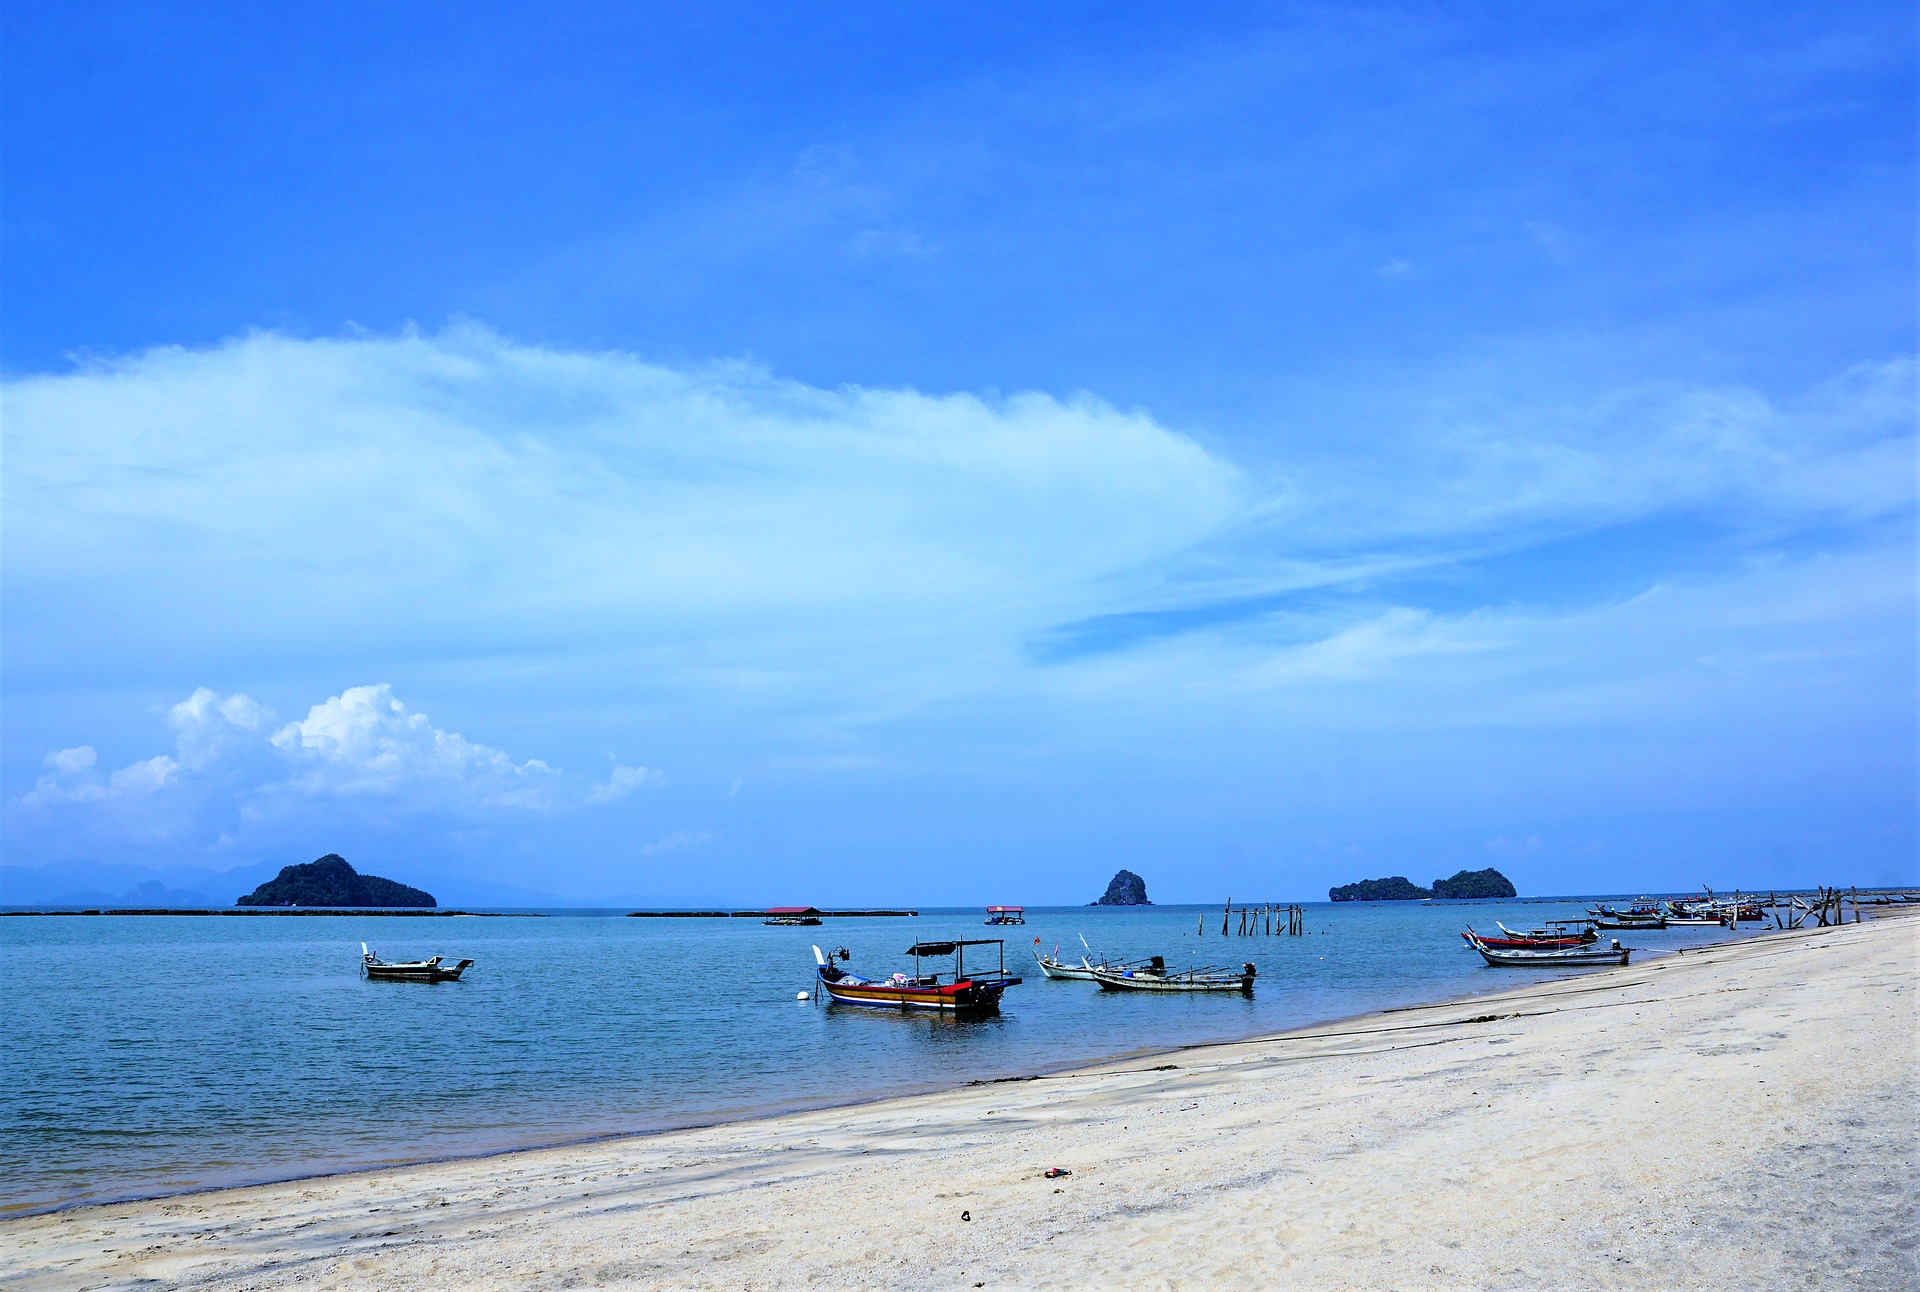 Image of a beach in Malaysia